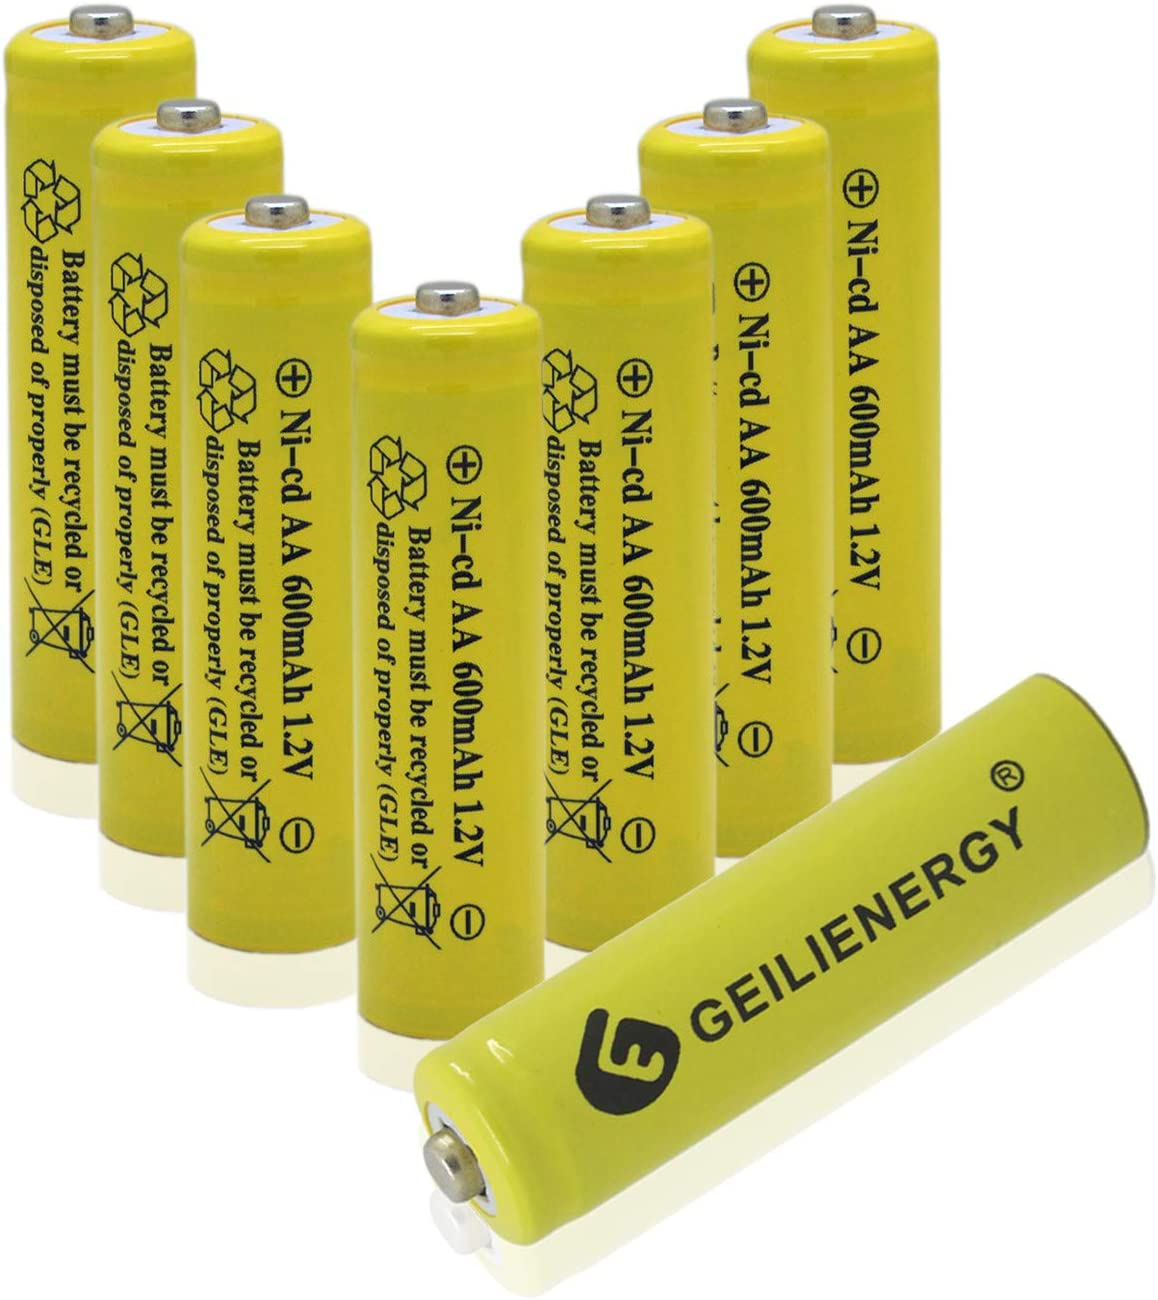 Geilienergy AA NiCd 600 mAh 1.2 V Rechargeable Batteries for Solar Light Pack of 4